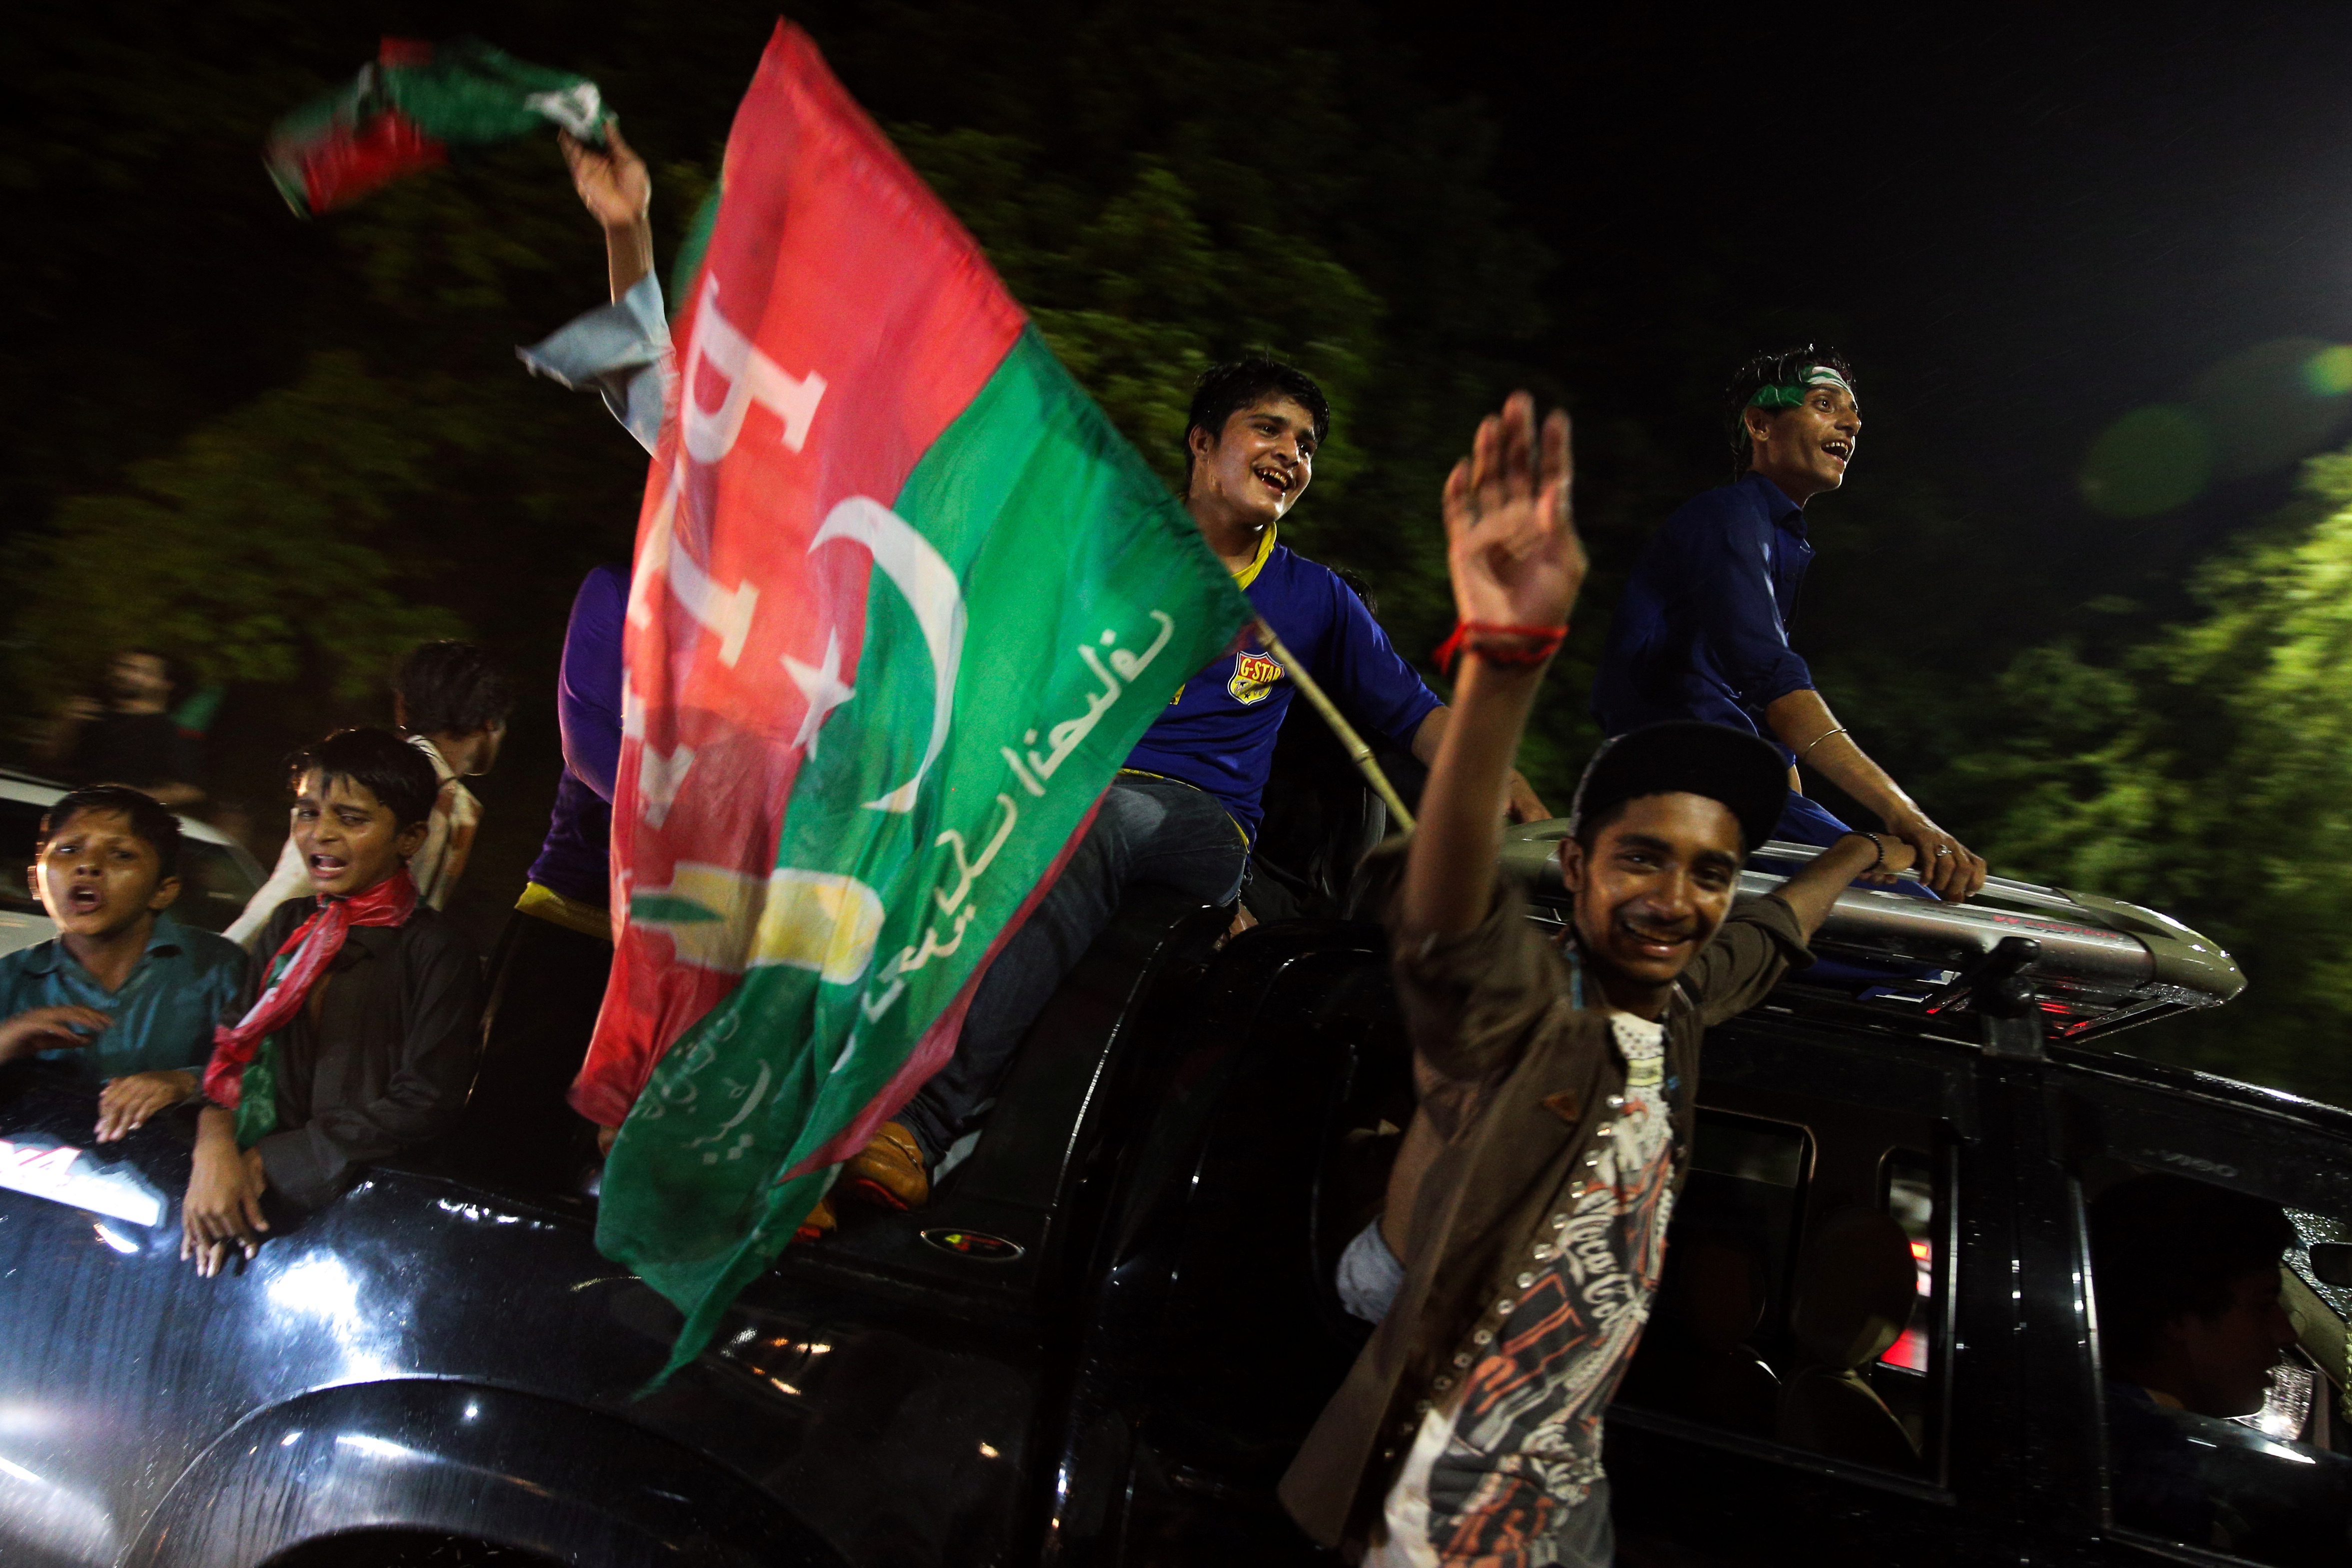 Supporters of Imran Khan, chairman of the Pakistan Tehreek-e-Insaf (PTI), political party celebrate during the general election in Islamabad, Pakistan, July 26, 2018. REUTERS/Athit Perawongmetha - RC1F05E92740